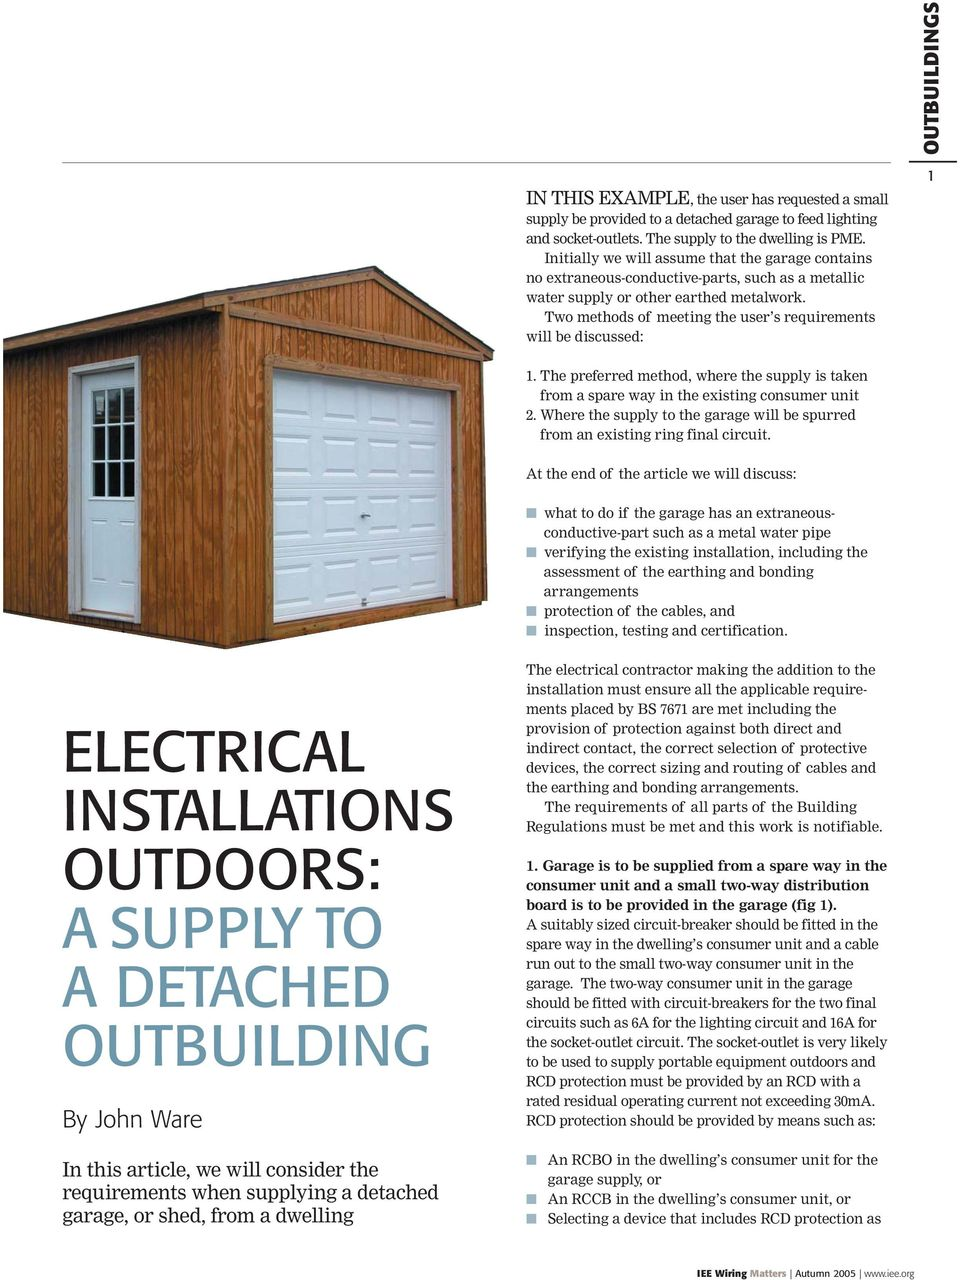 Wiring Matters Earthing Your Questions Answered Electrical Detached Garage Two Methods Of Meeting The User S Requirements Will Be Discussed 1 Preferred